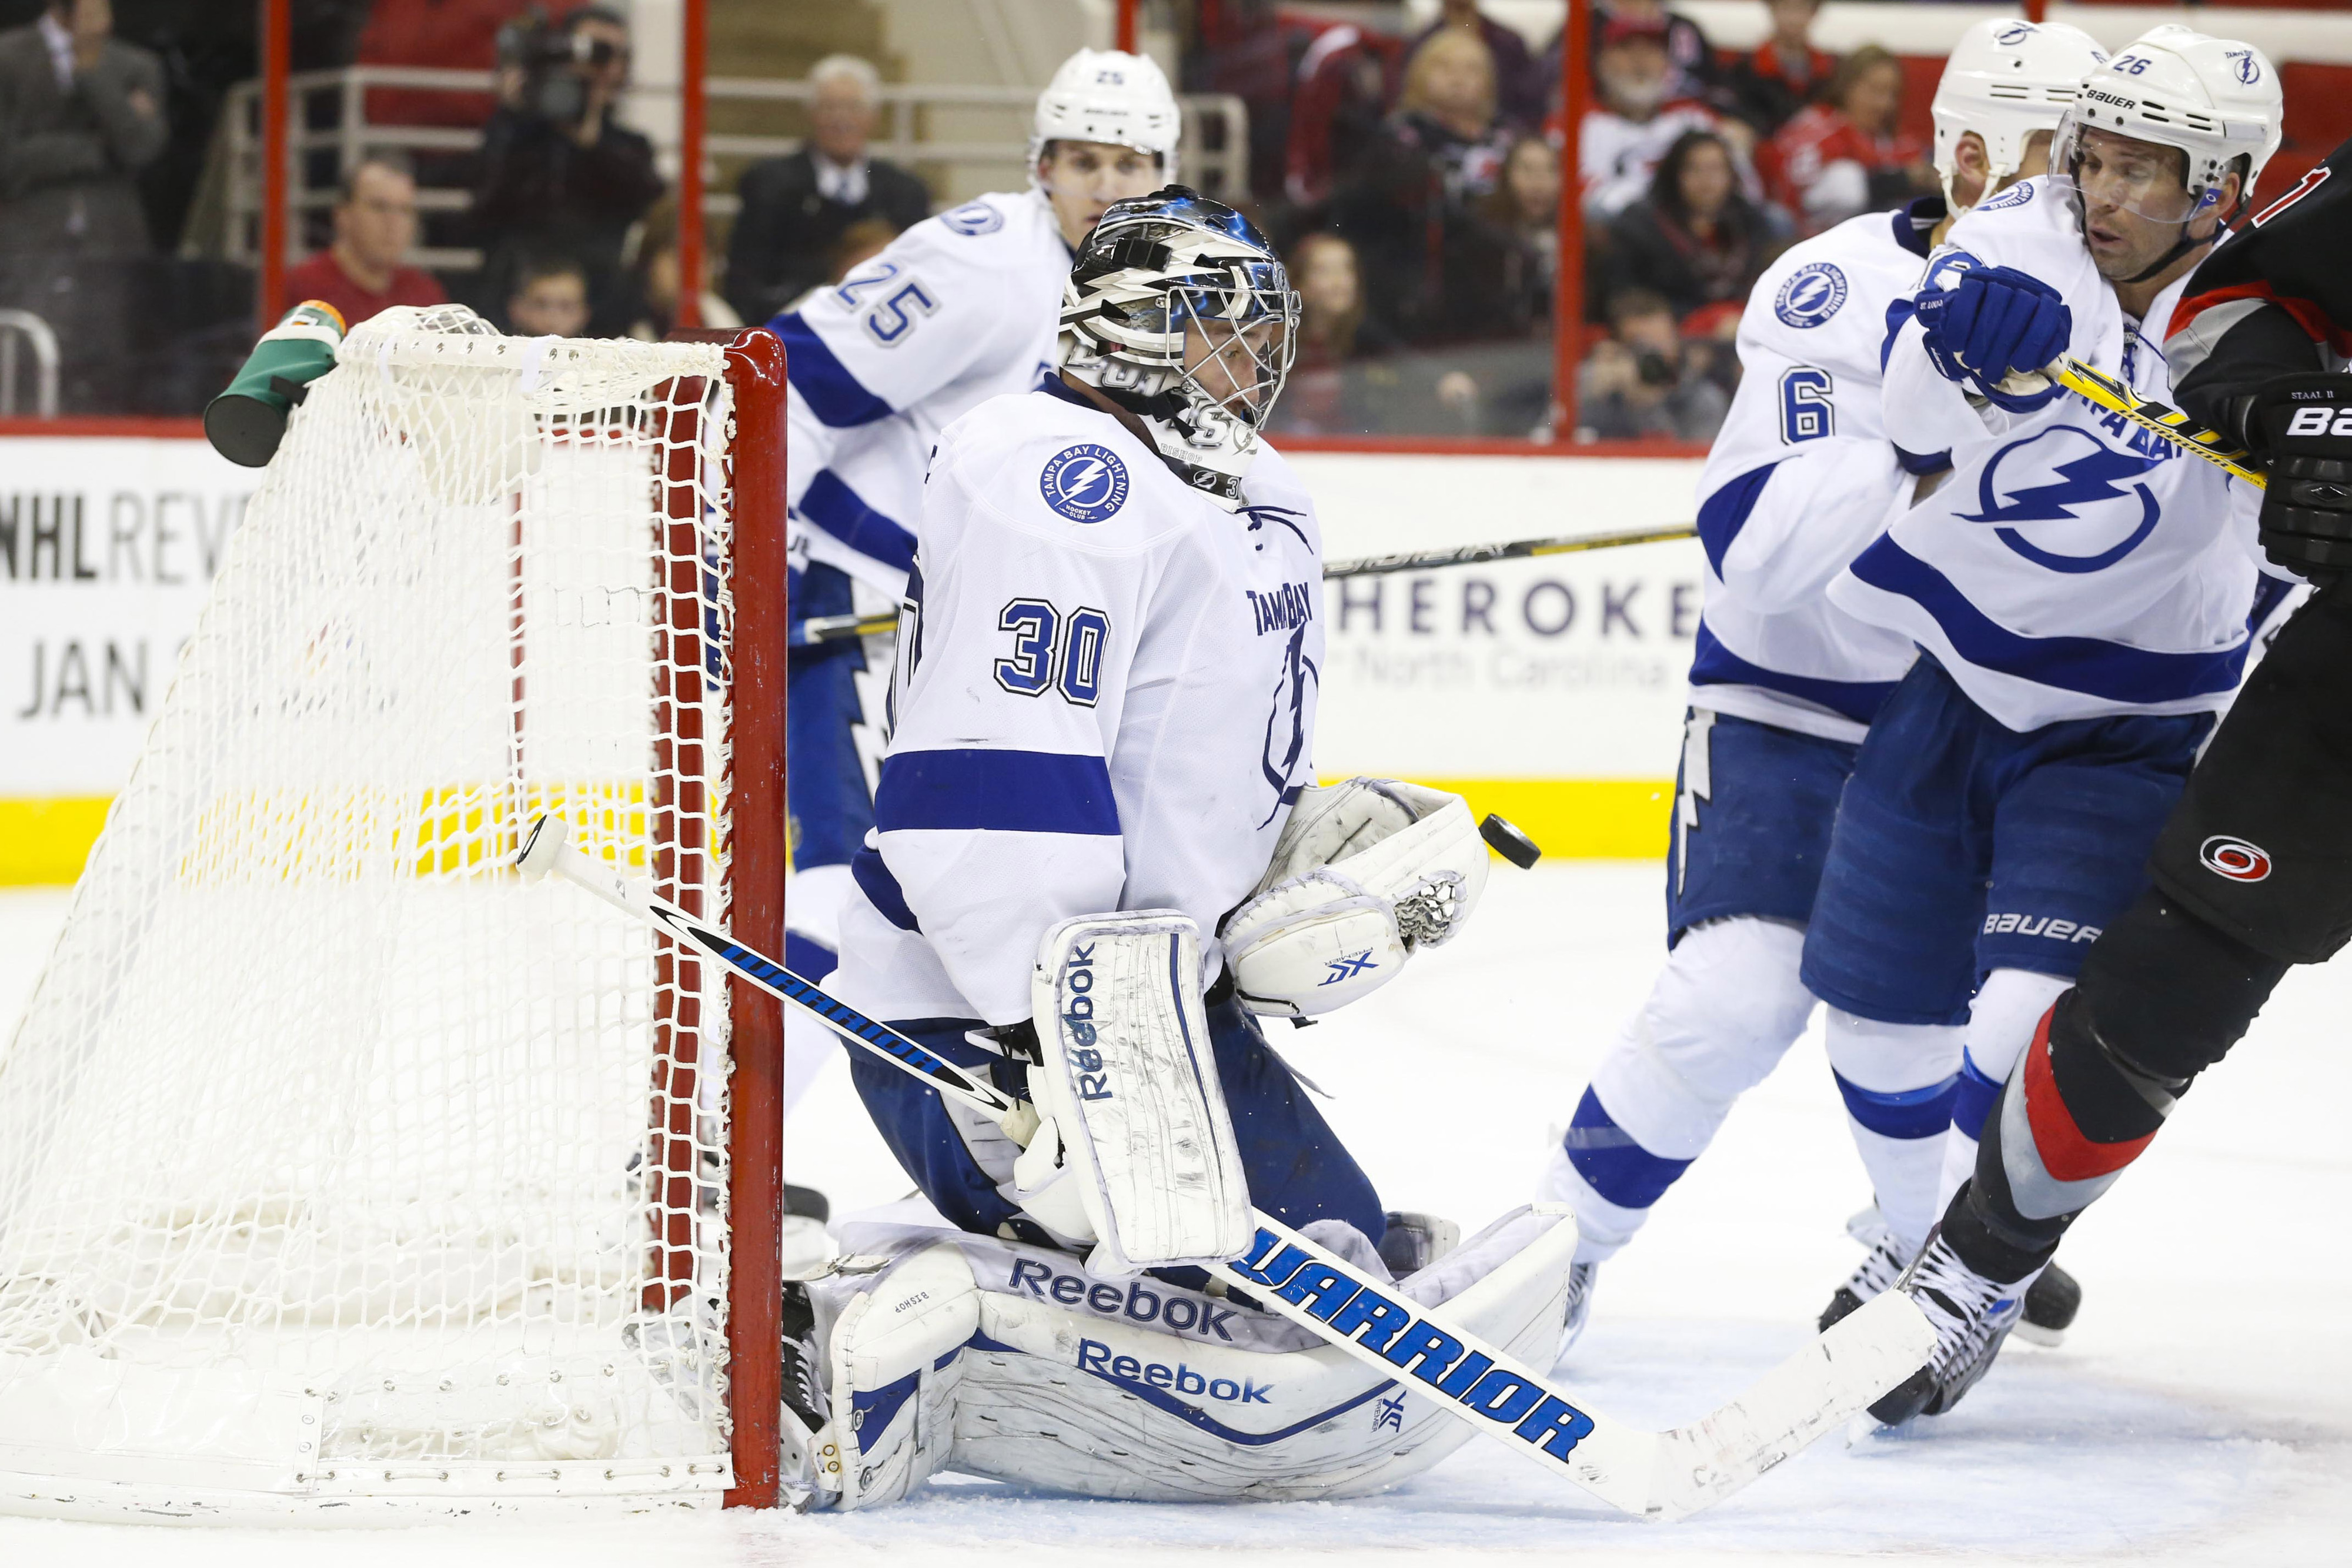 Bishop makes a save against Carolina. This repeated 47 more times.